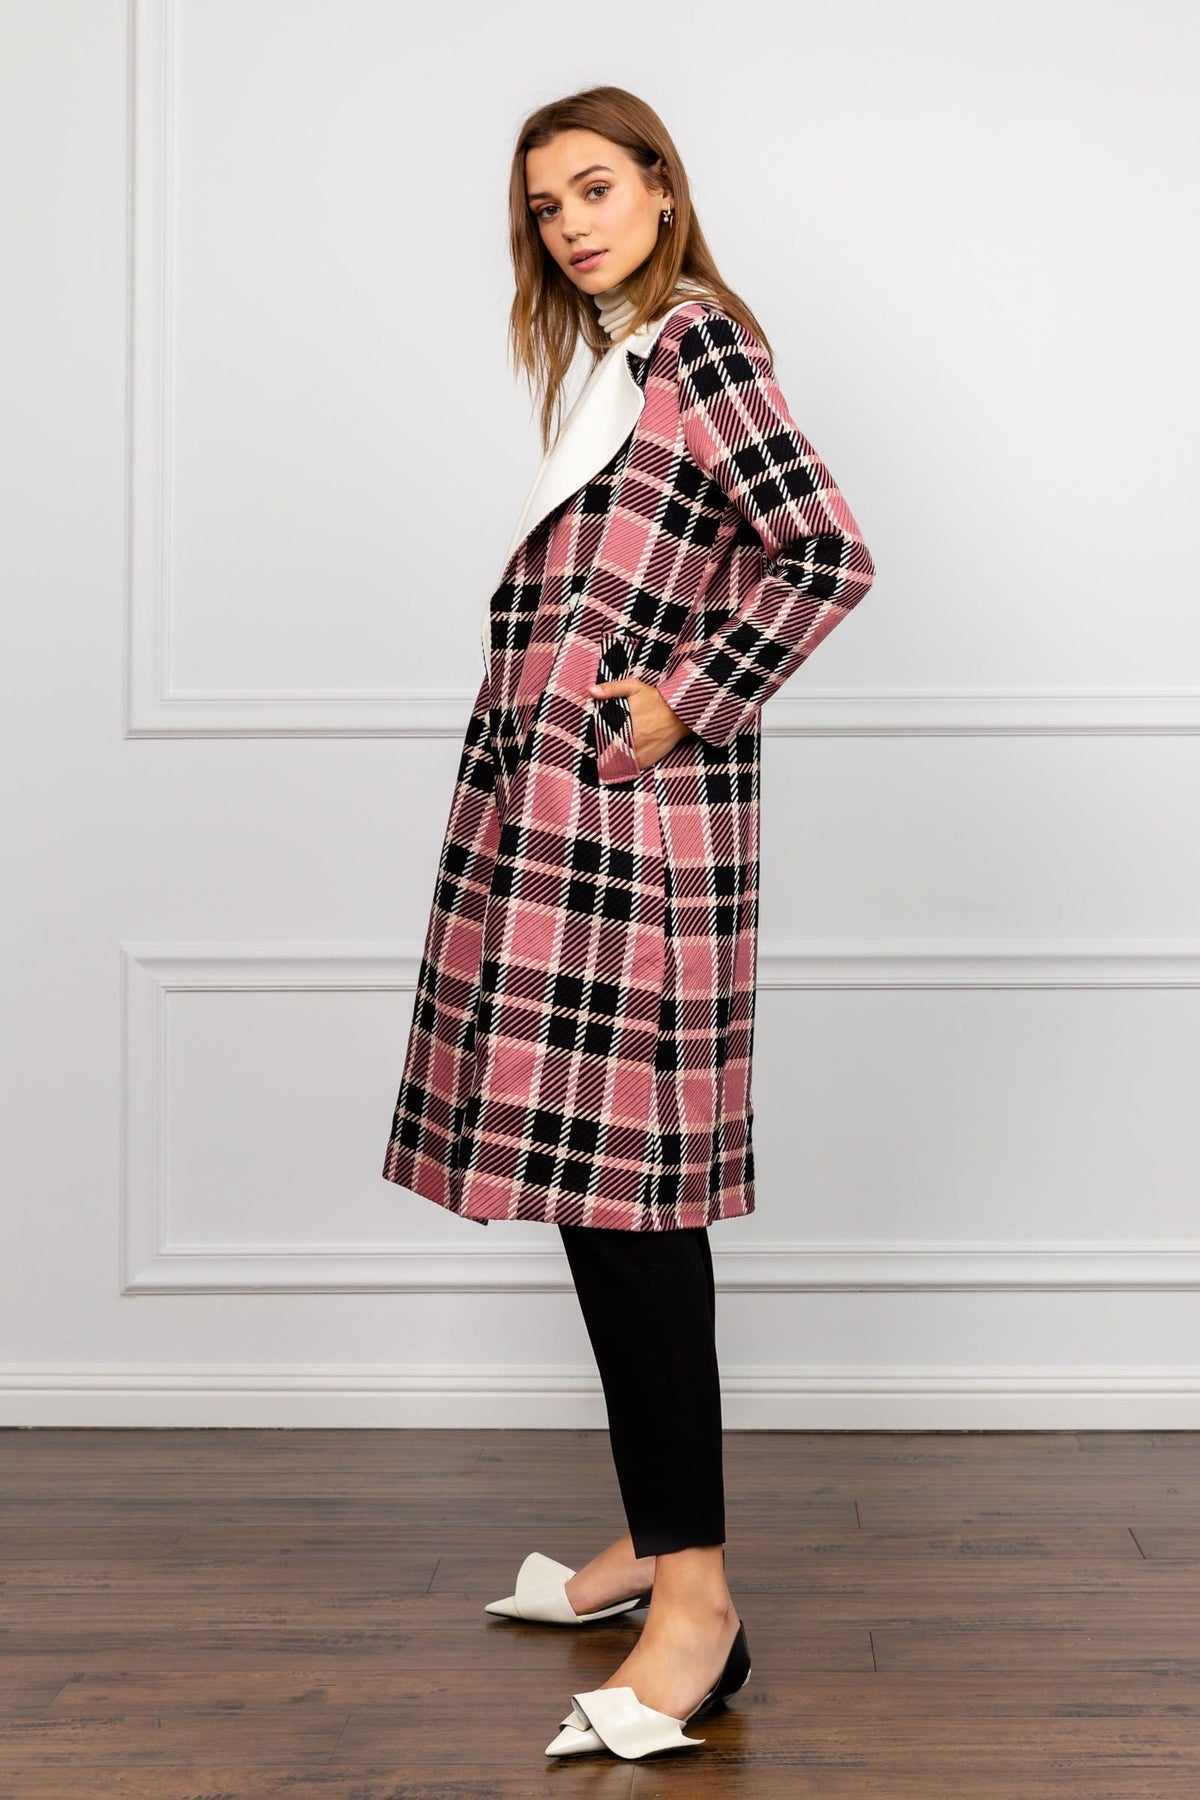 Franny Pink Plaid Coat